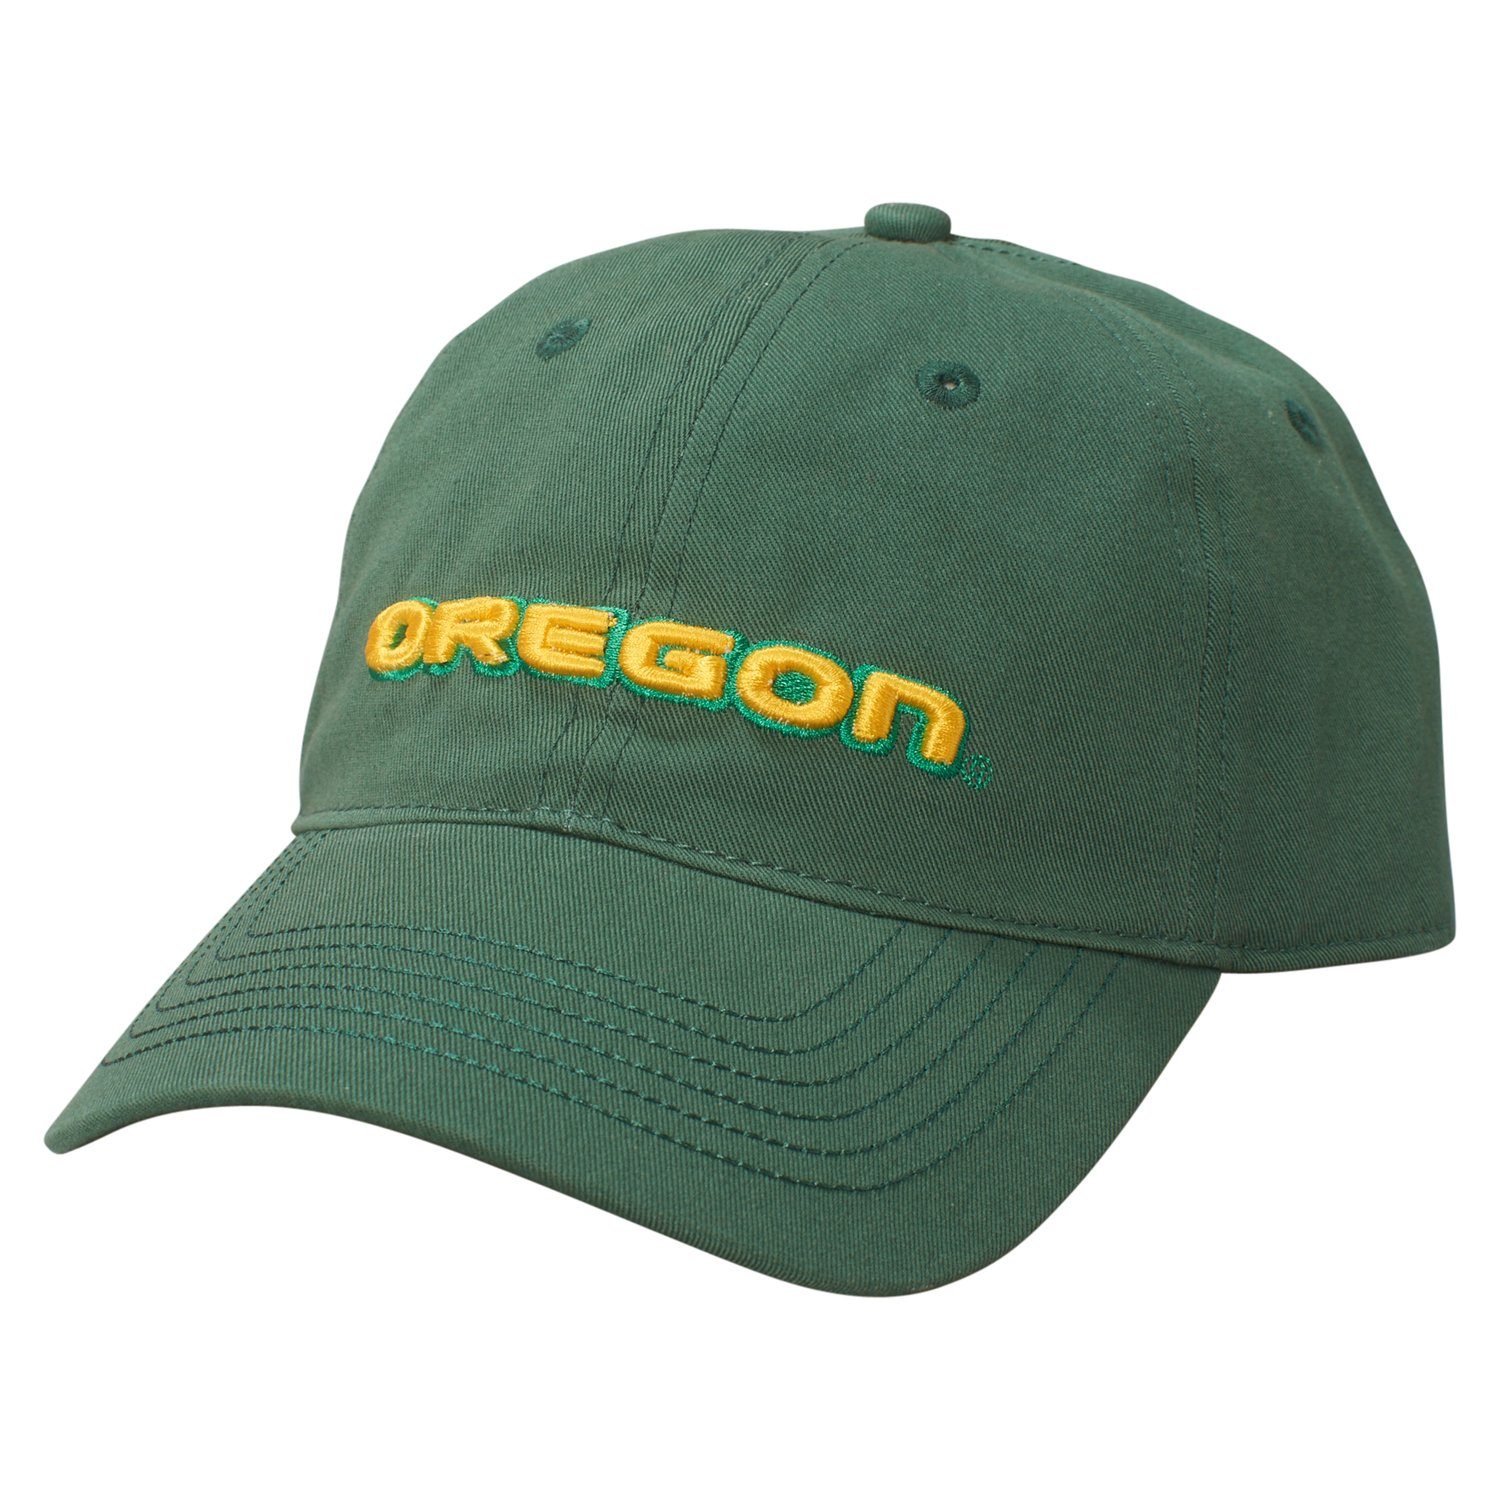 Adjustable Ouray Sportswear Adult-Men Epic Washed Twill Cap Hunter